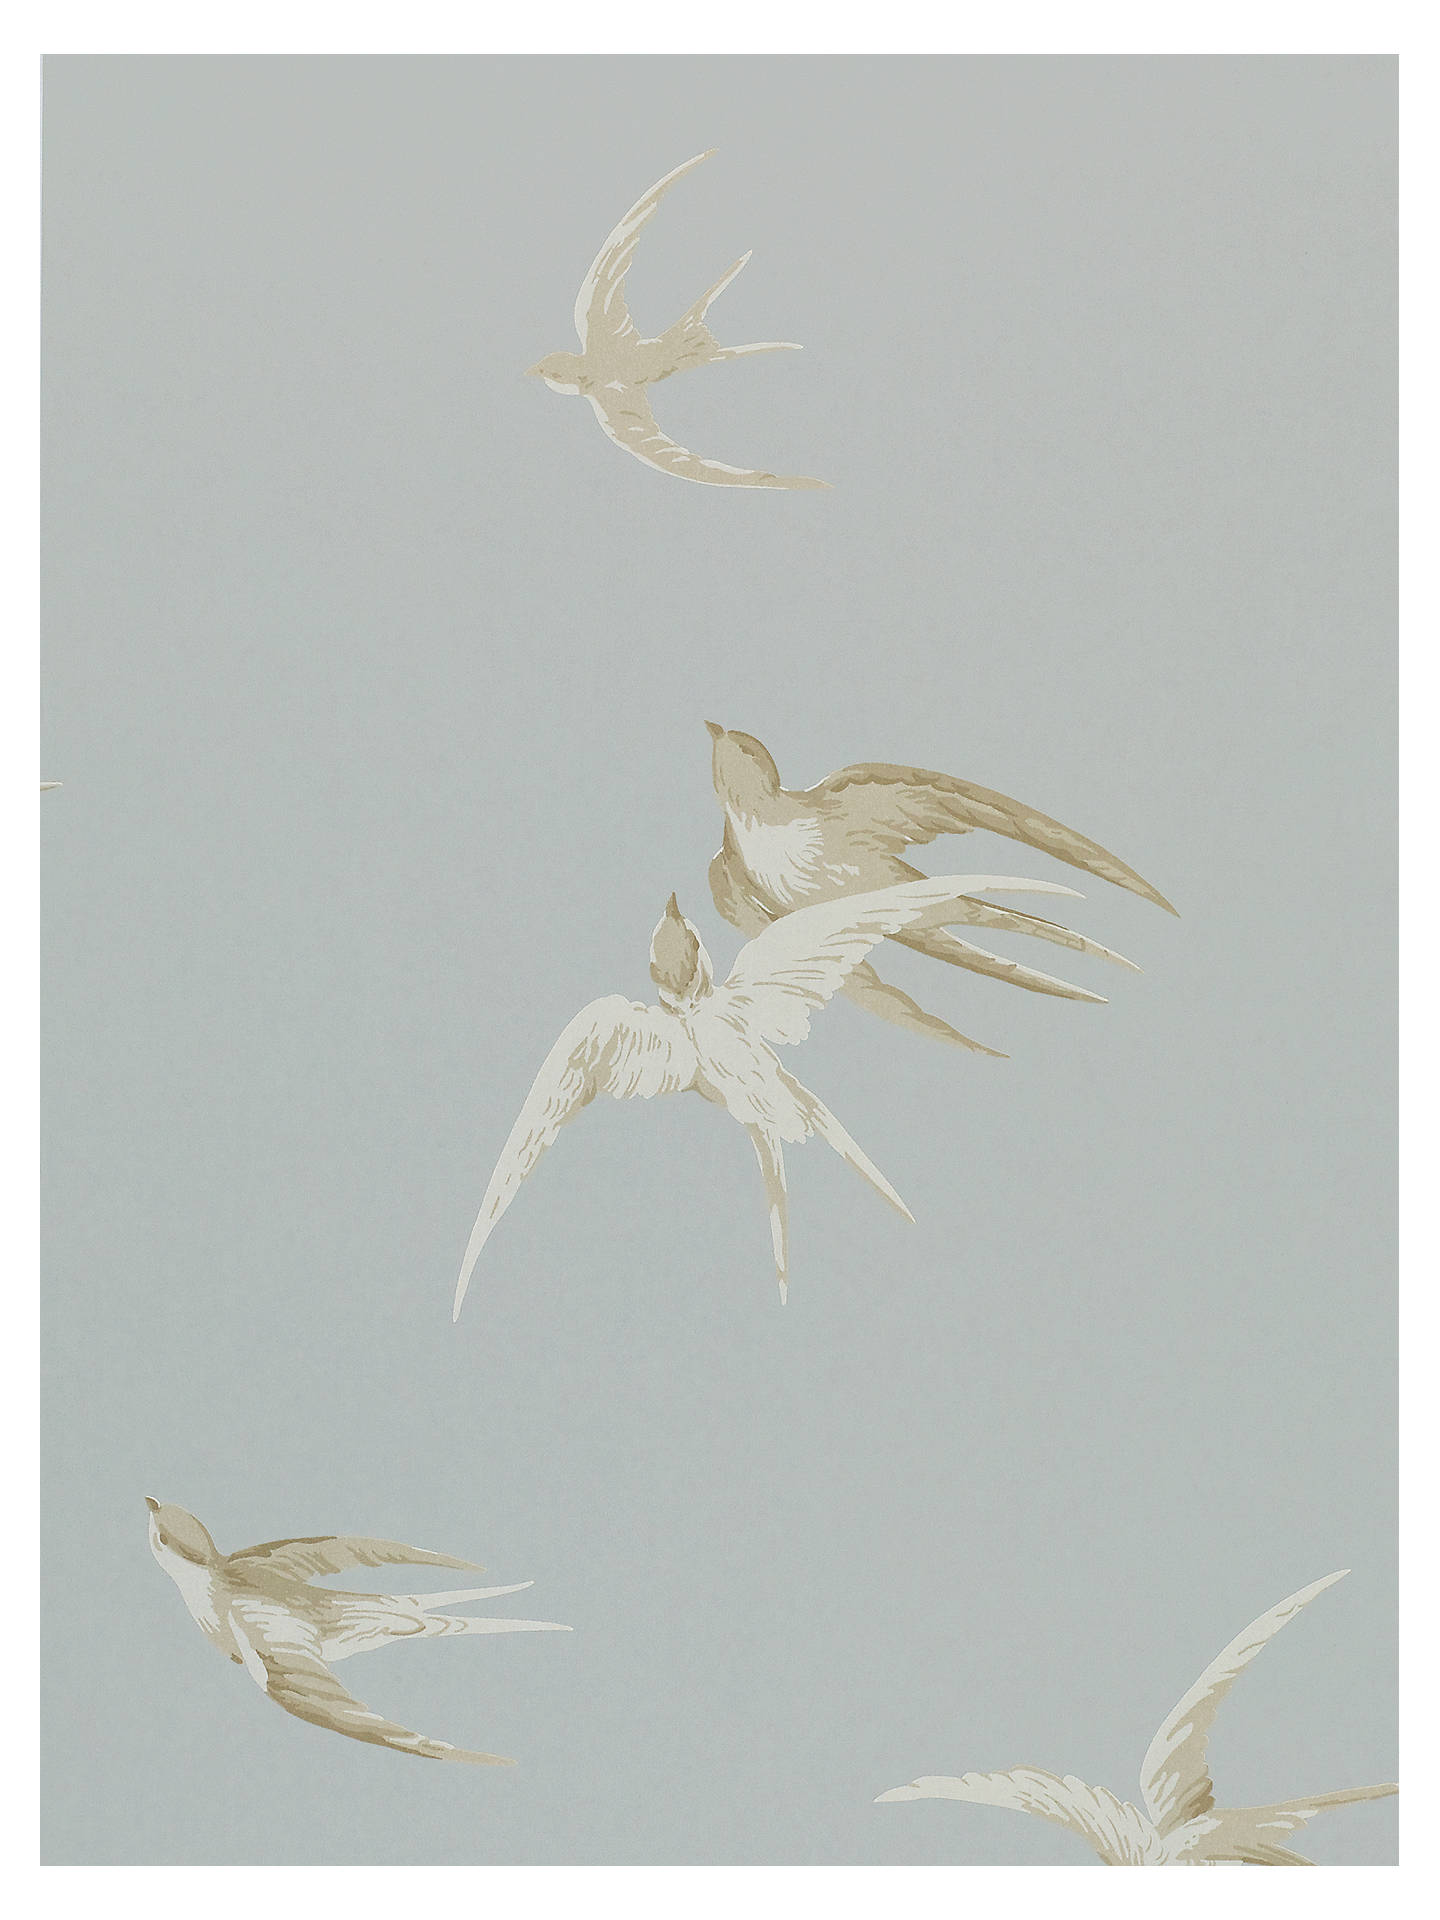 Buy Sanderson Swallows Wallpaper, Silver, DVIWSW104 Online at johnlewis.com